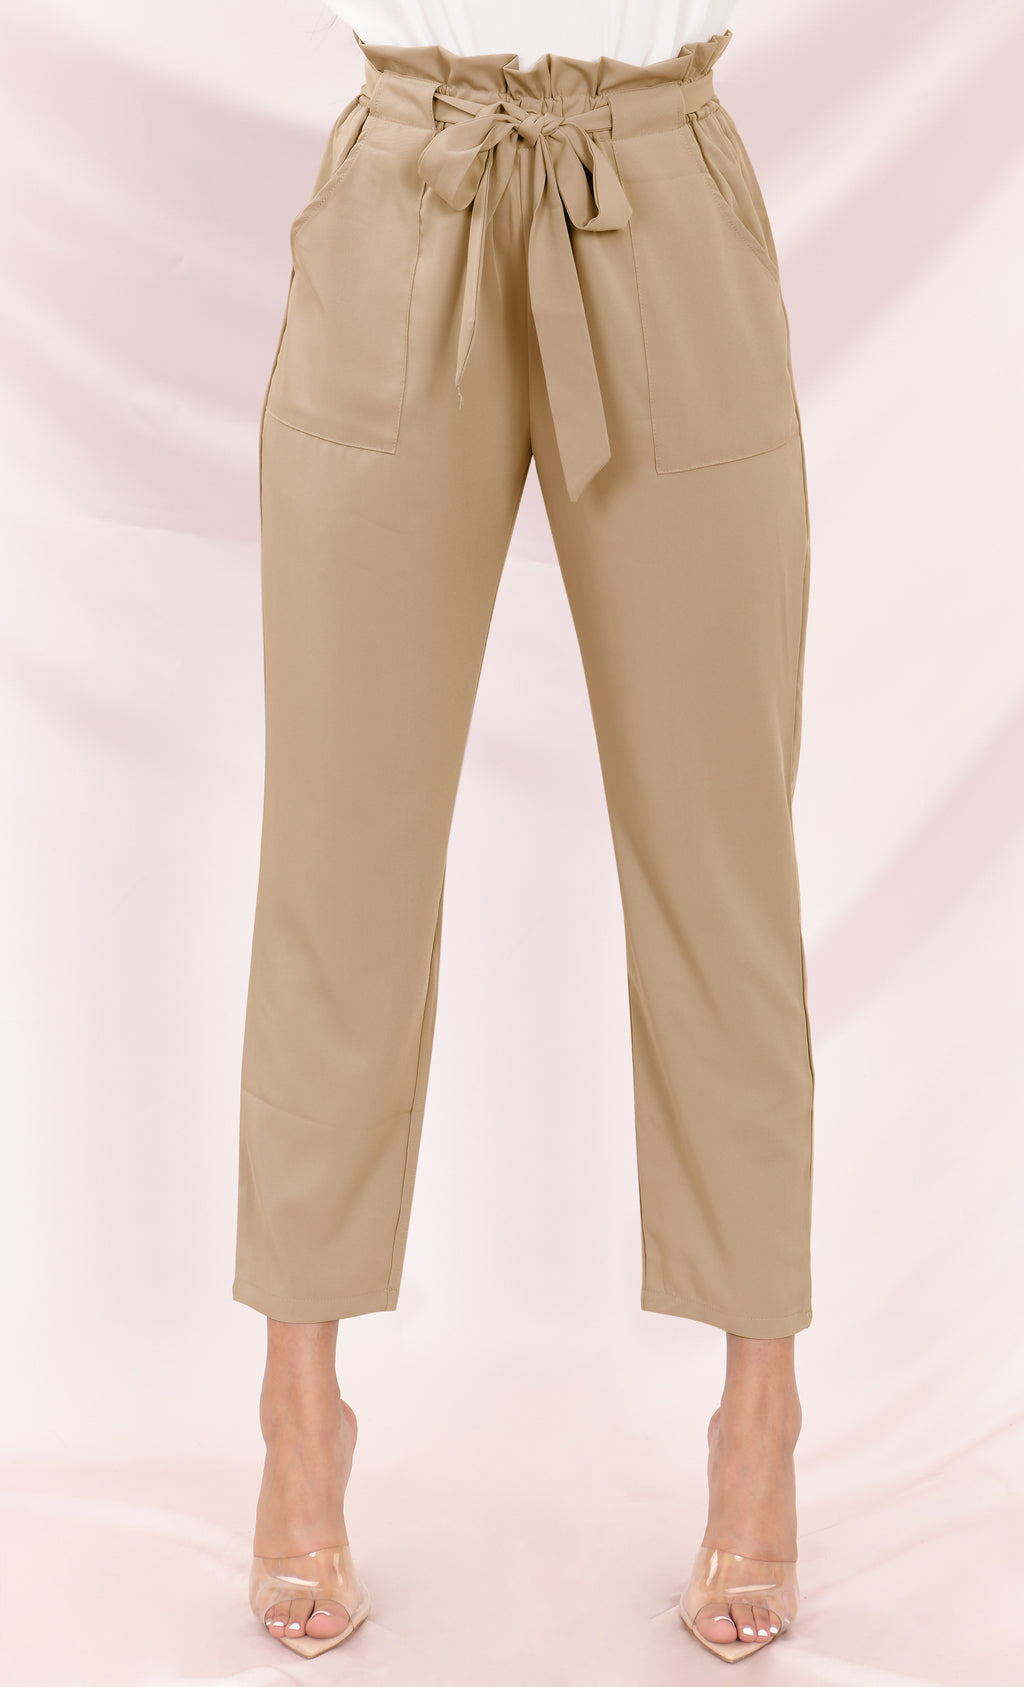 Urban Escape Khaki Tie Waist Loose Tapered Leg Pocket Trouser Pants